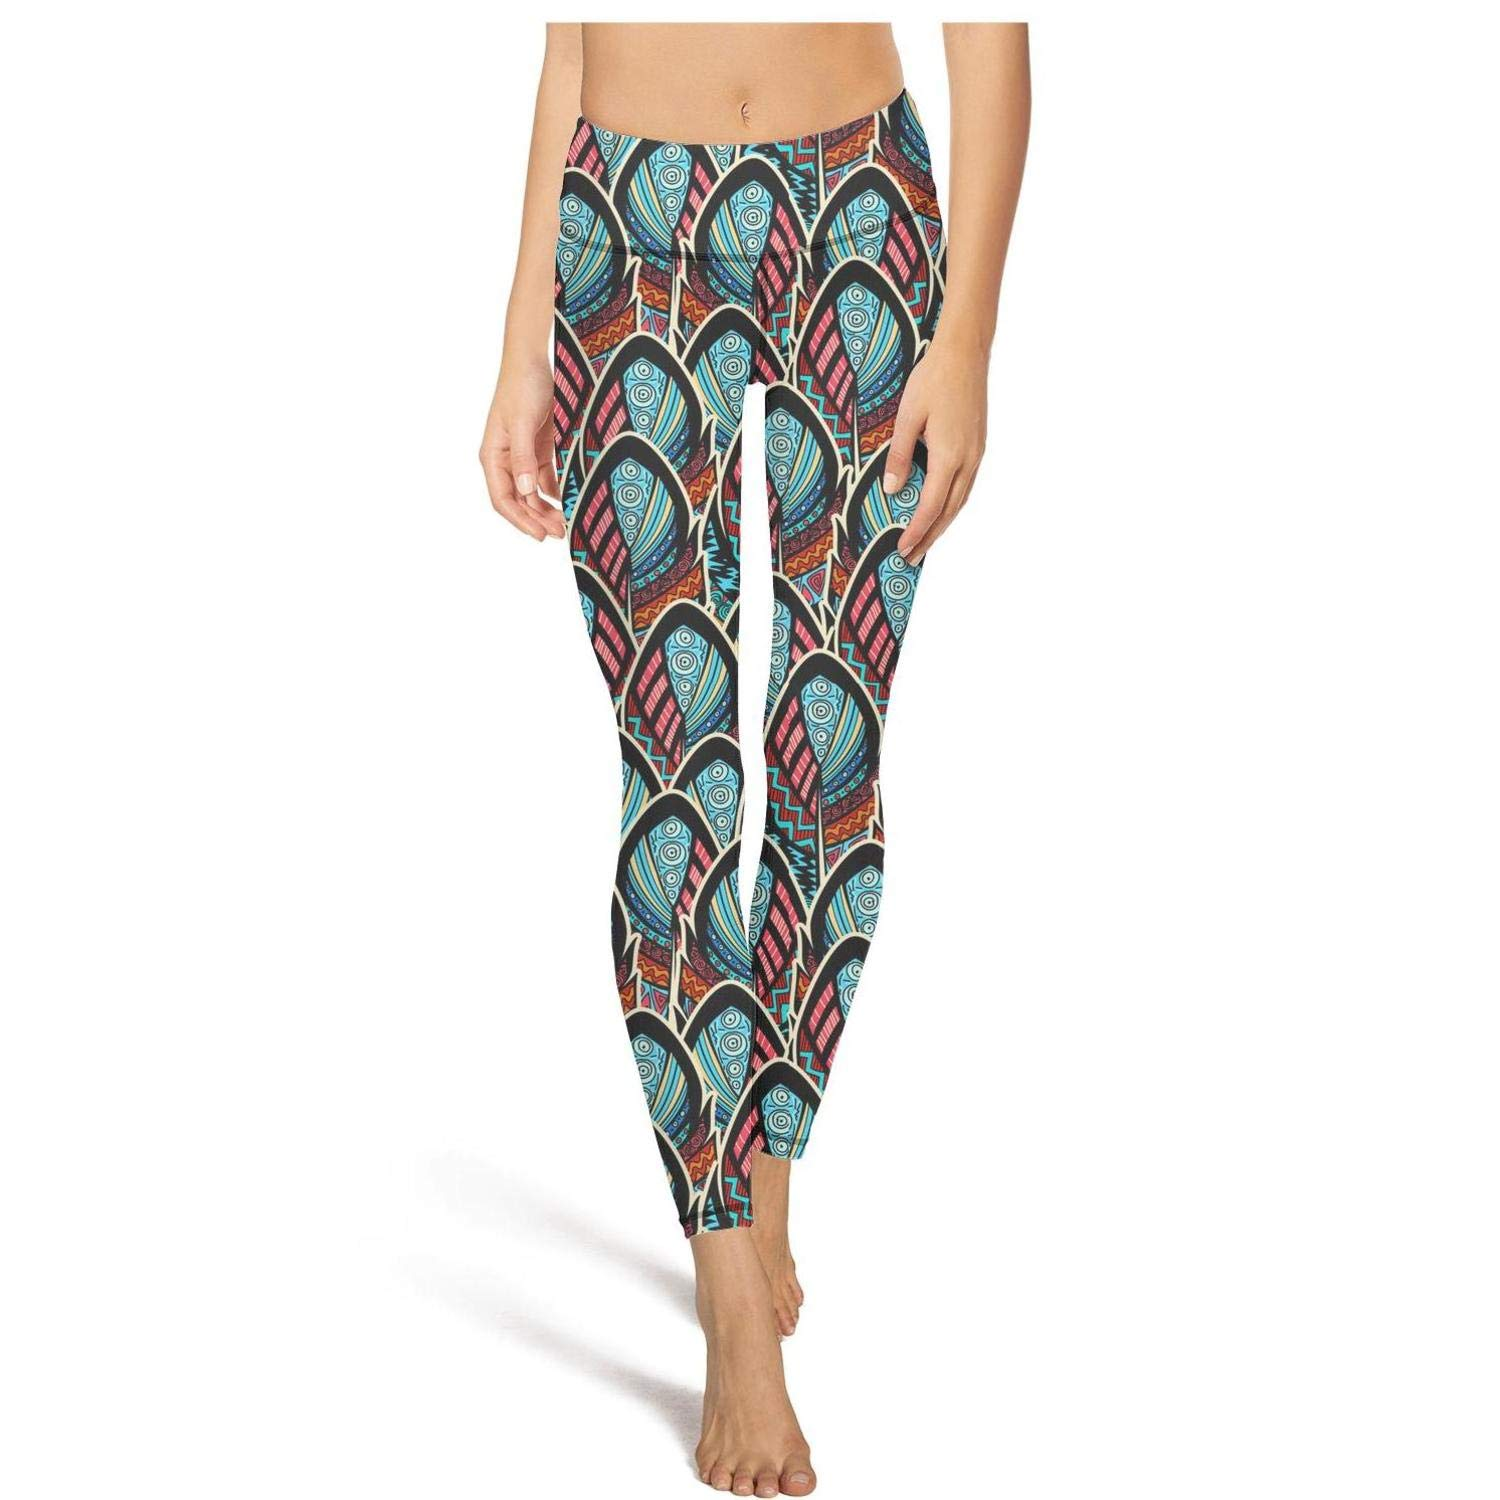 Womens Ornate Vintage Feathers Workout Running Leggins Tummy Control Gym Yoga Pants with Pockets